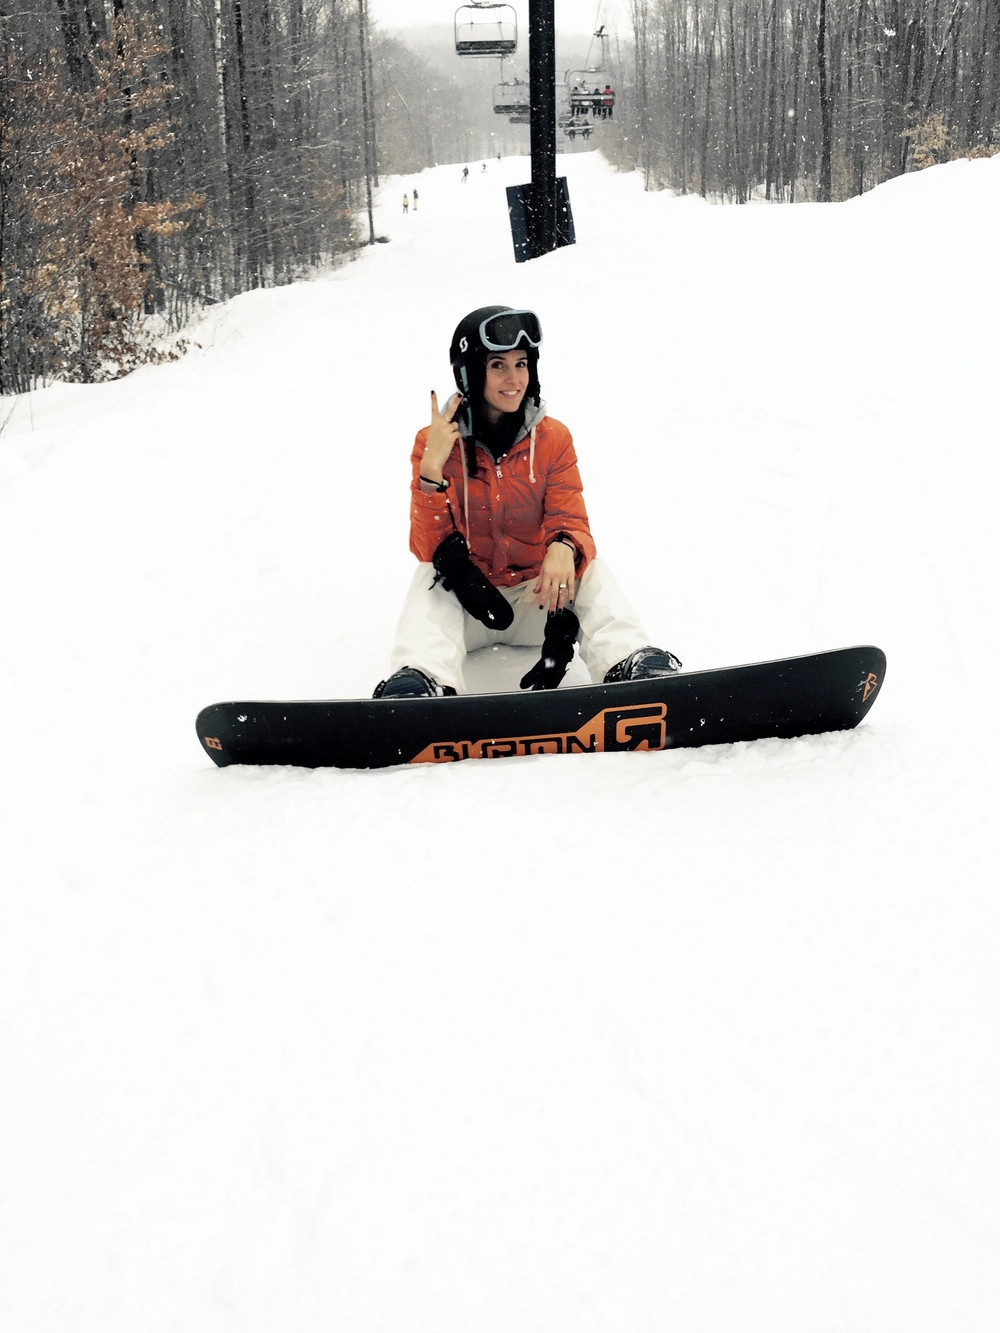 Me Boarding at Okemo Mountain